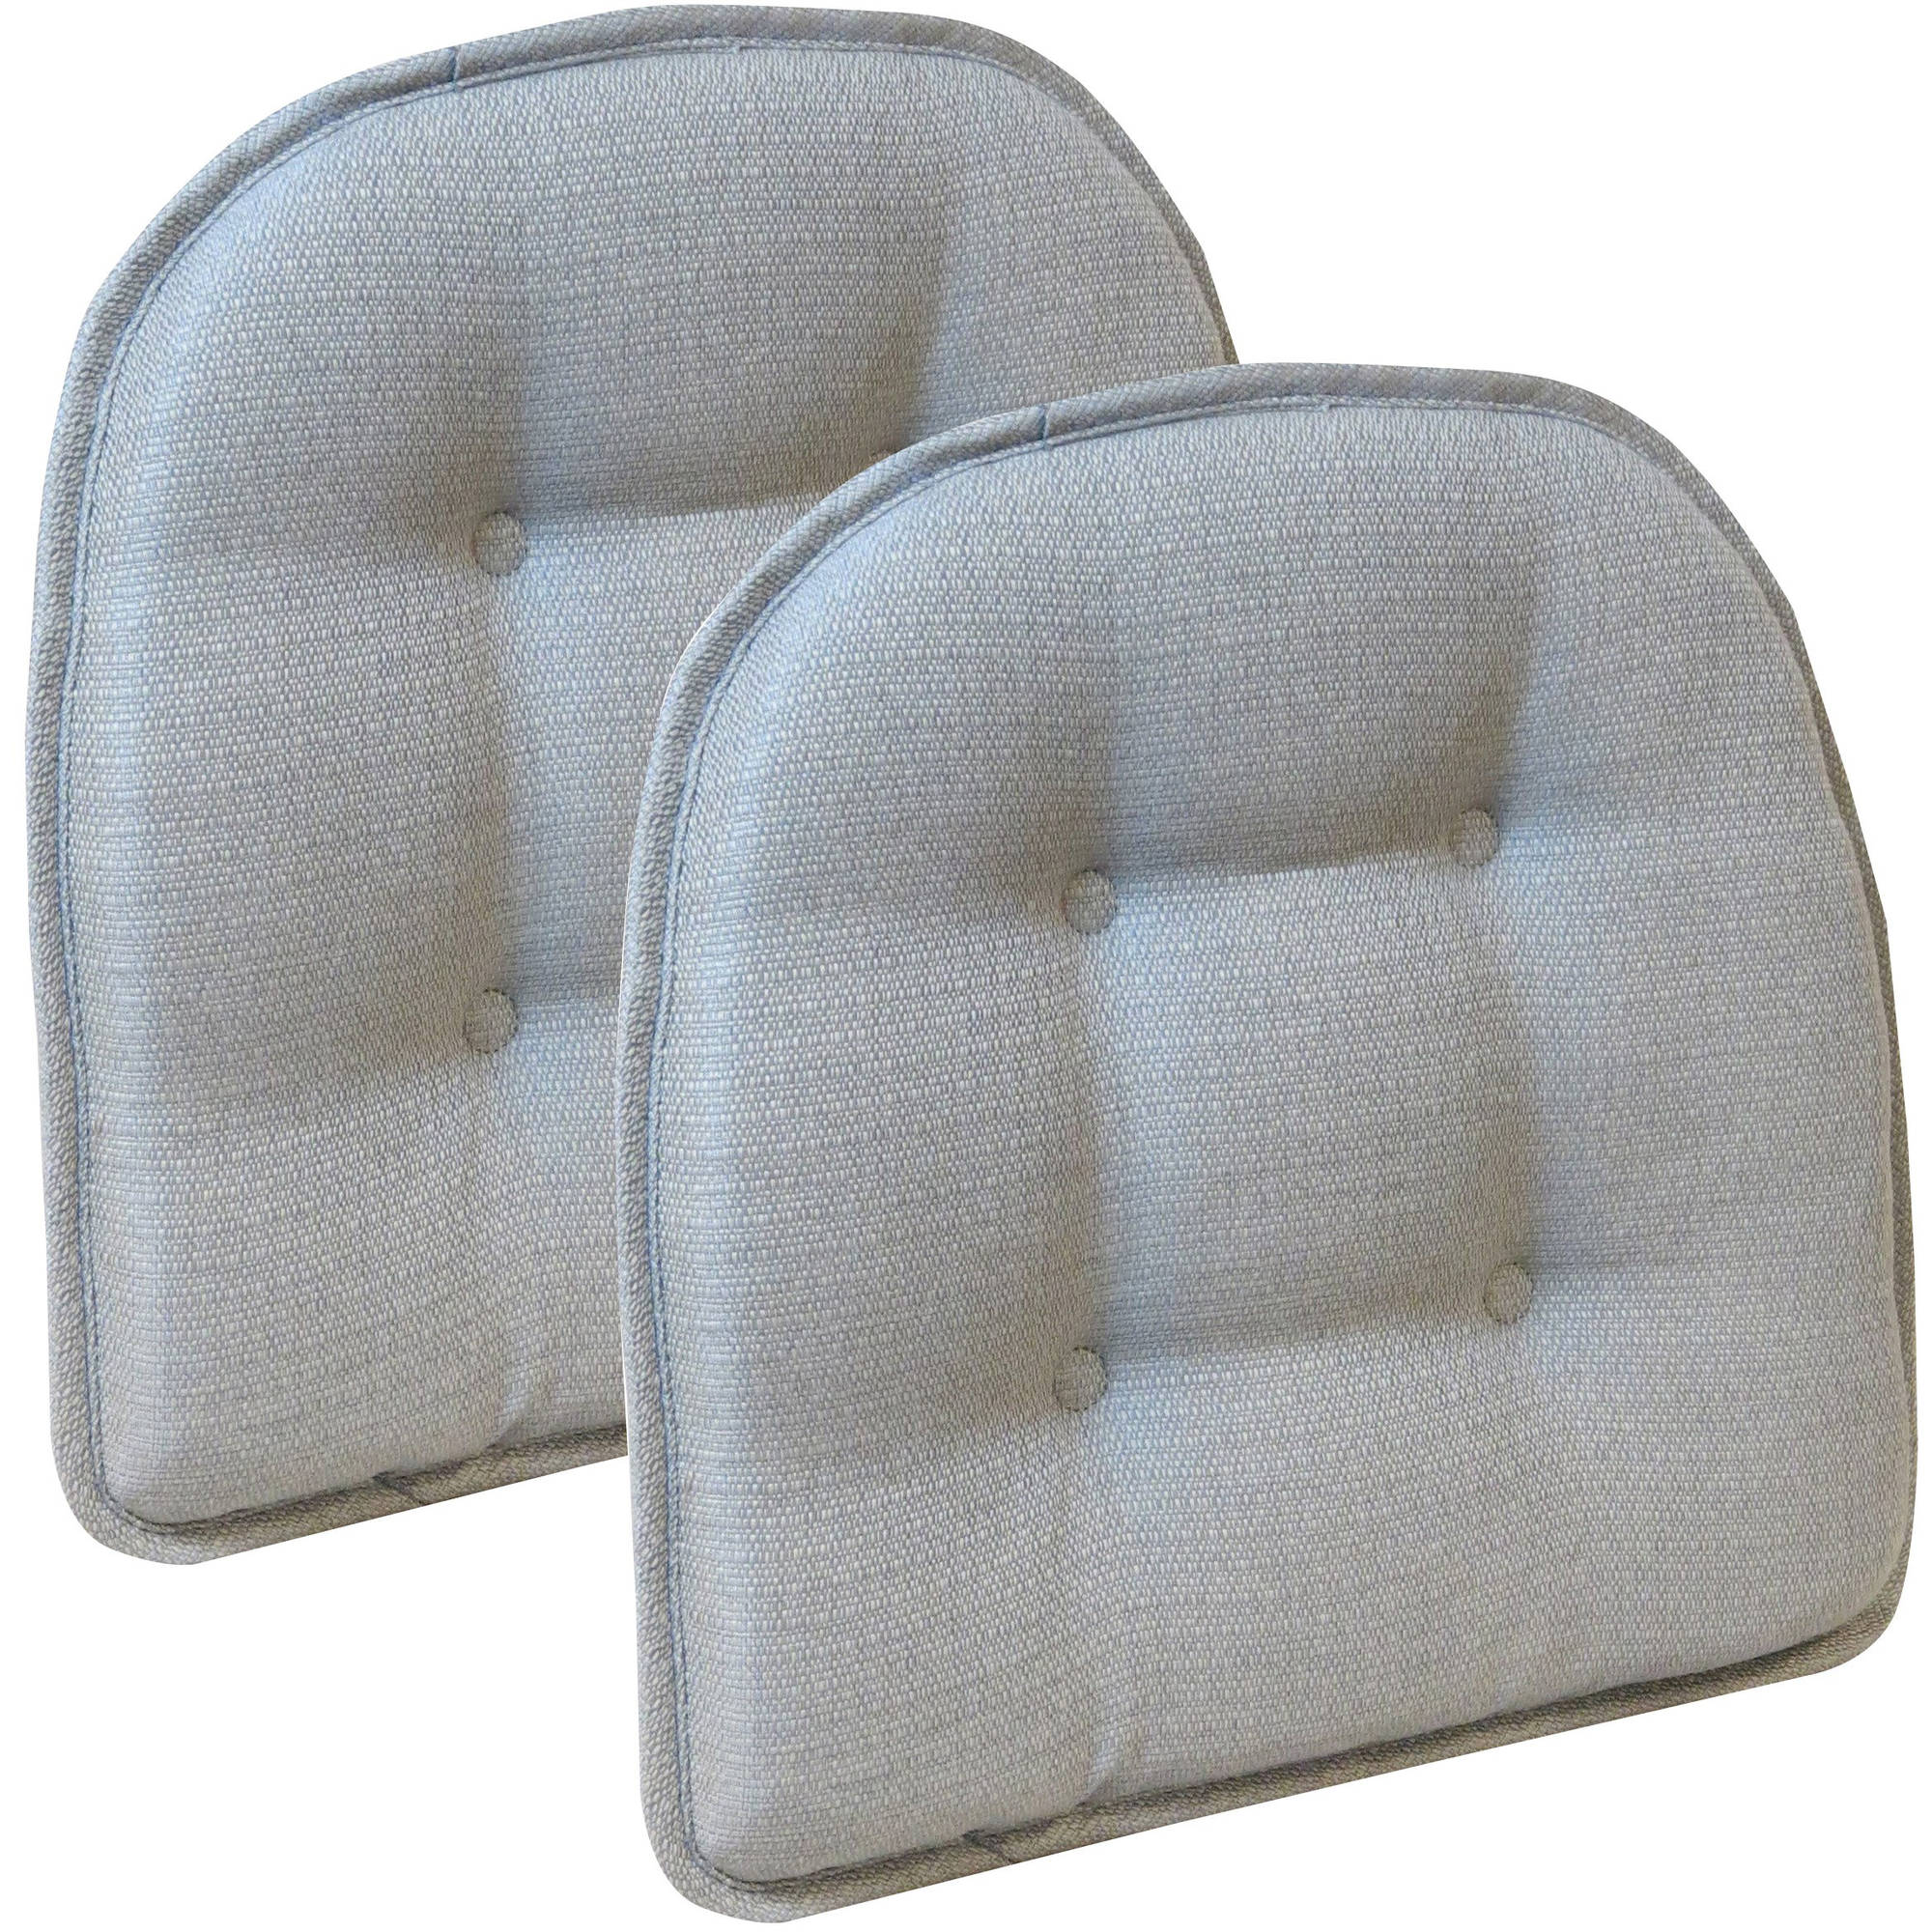 "Gripper Non-Slip 15"" x 16"" Omega Gray Tufted Chair Cushions, Set of 2"